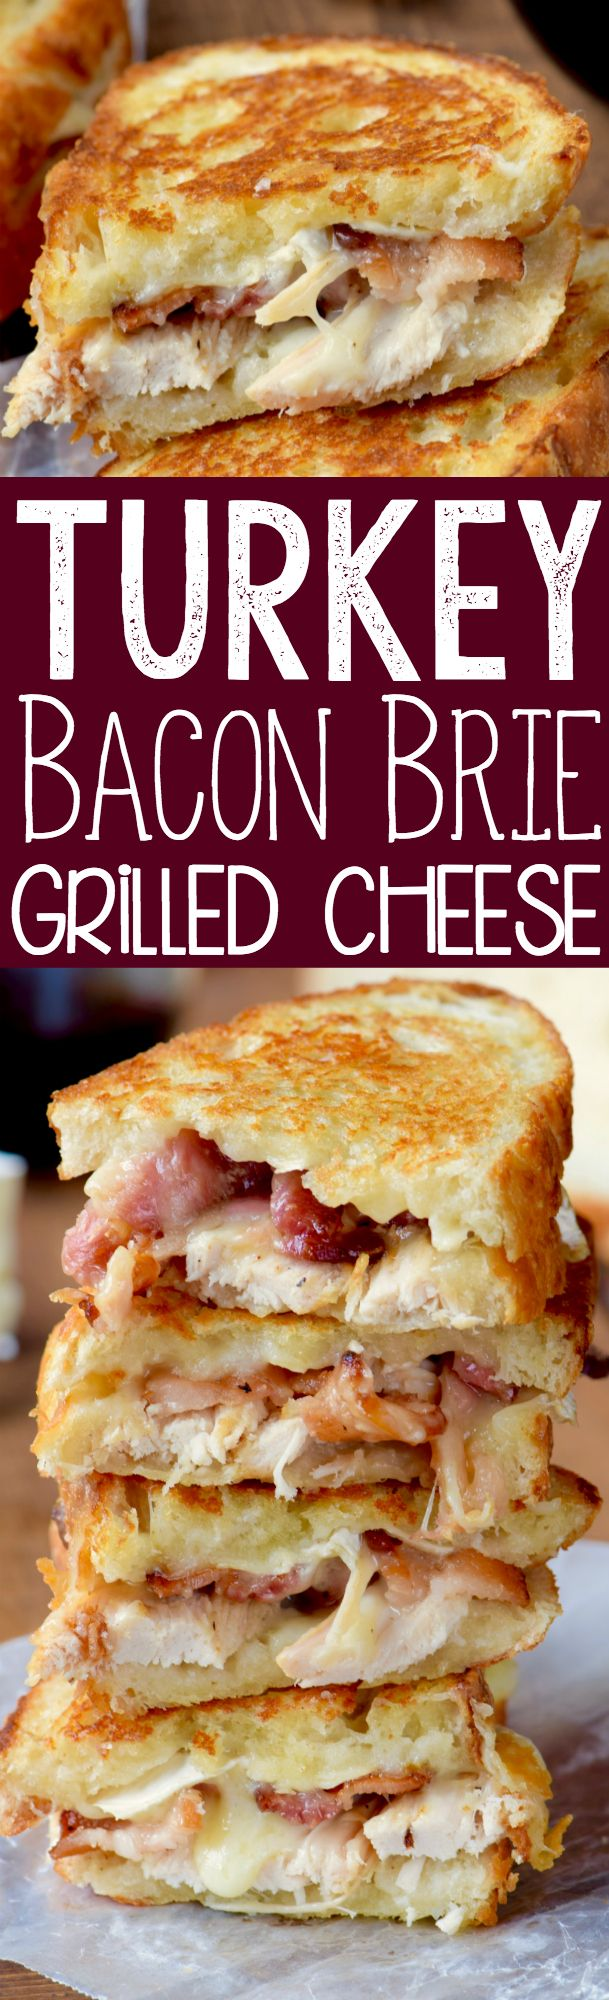 This Turkey Bacon Brie Grilled Cheese Sandwich is super easy and absolutely delicious! My favorite kind of food! #grillingrecipes